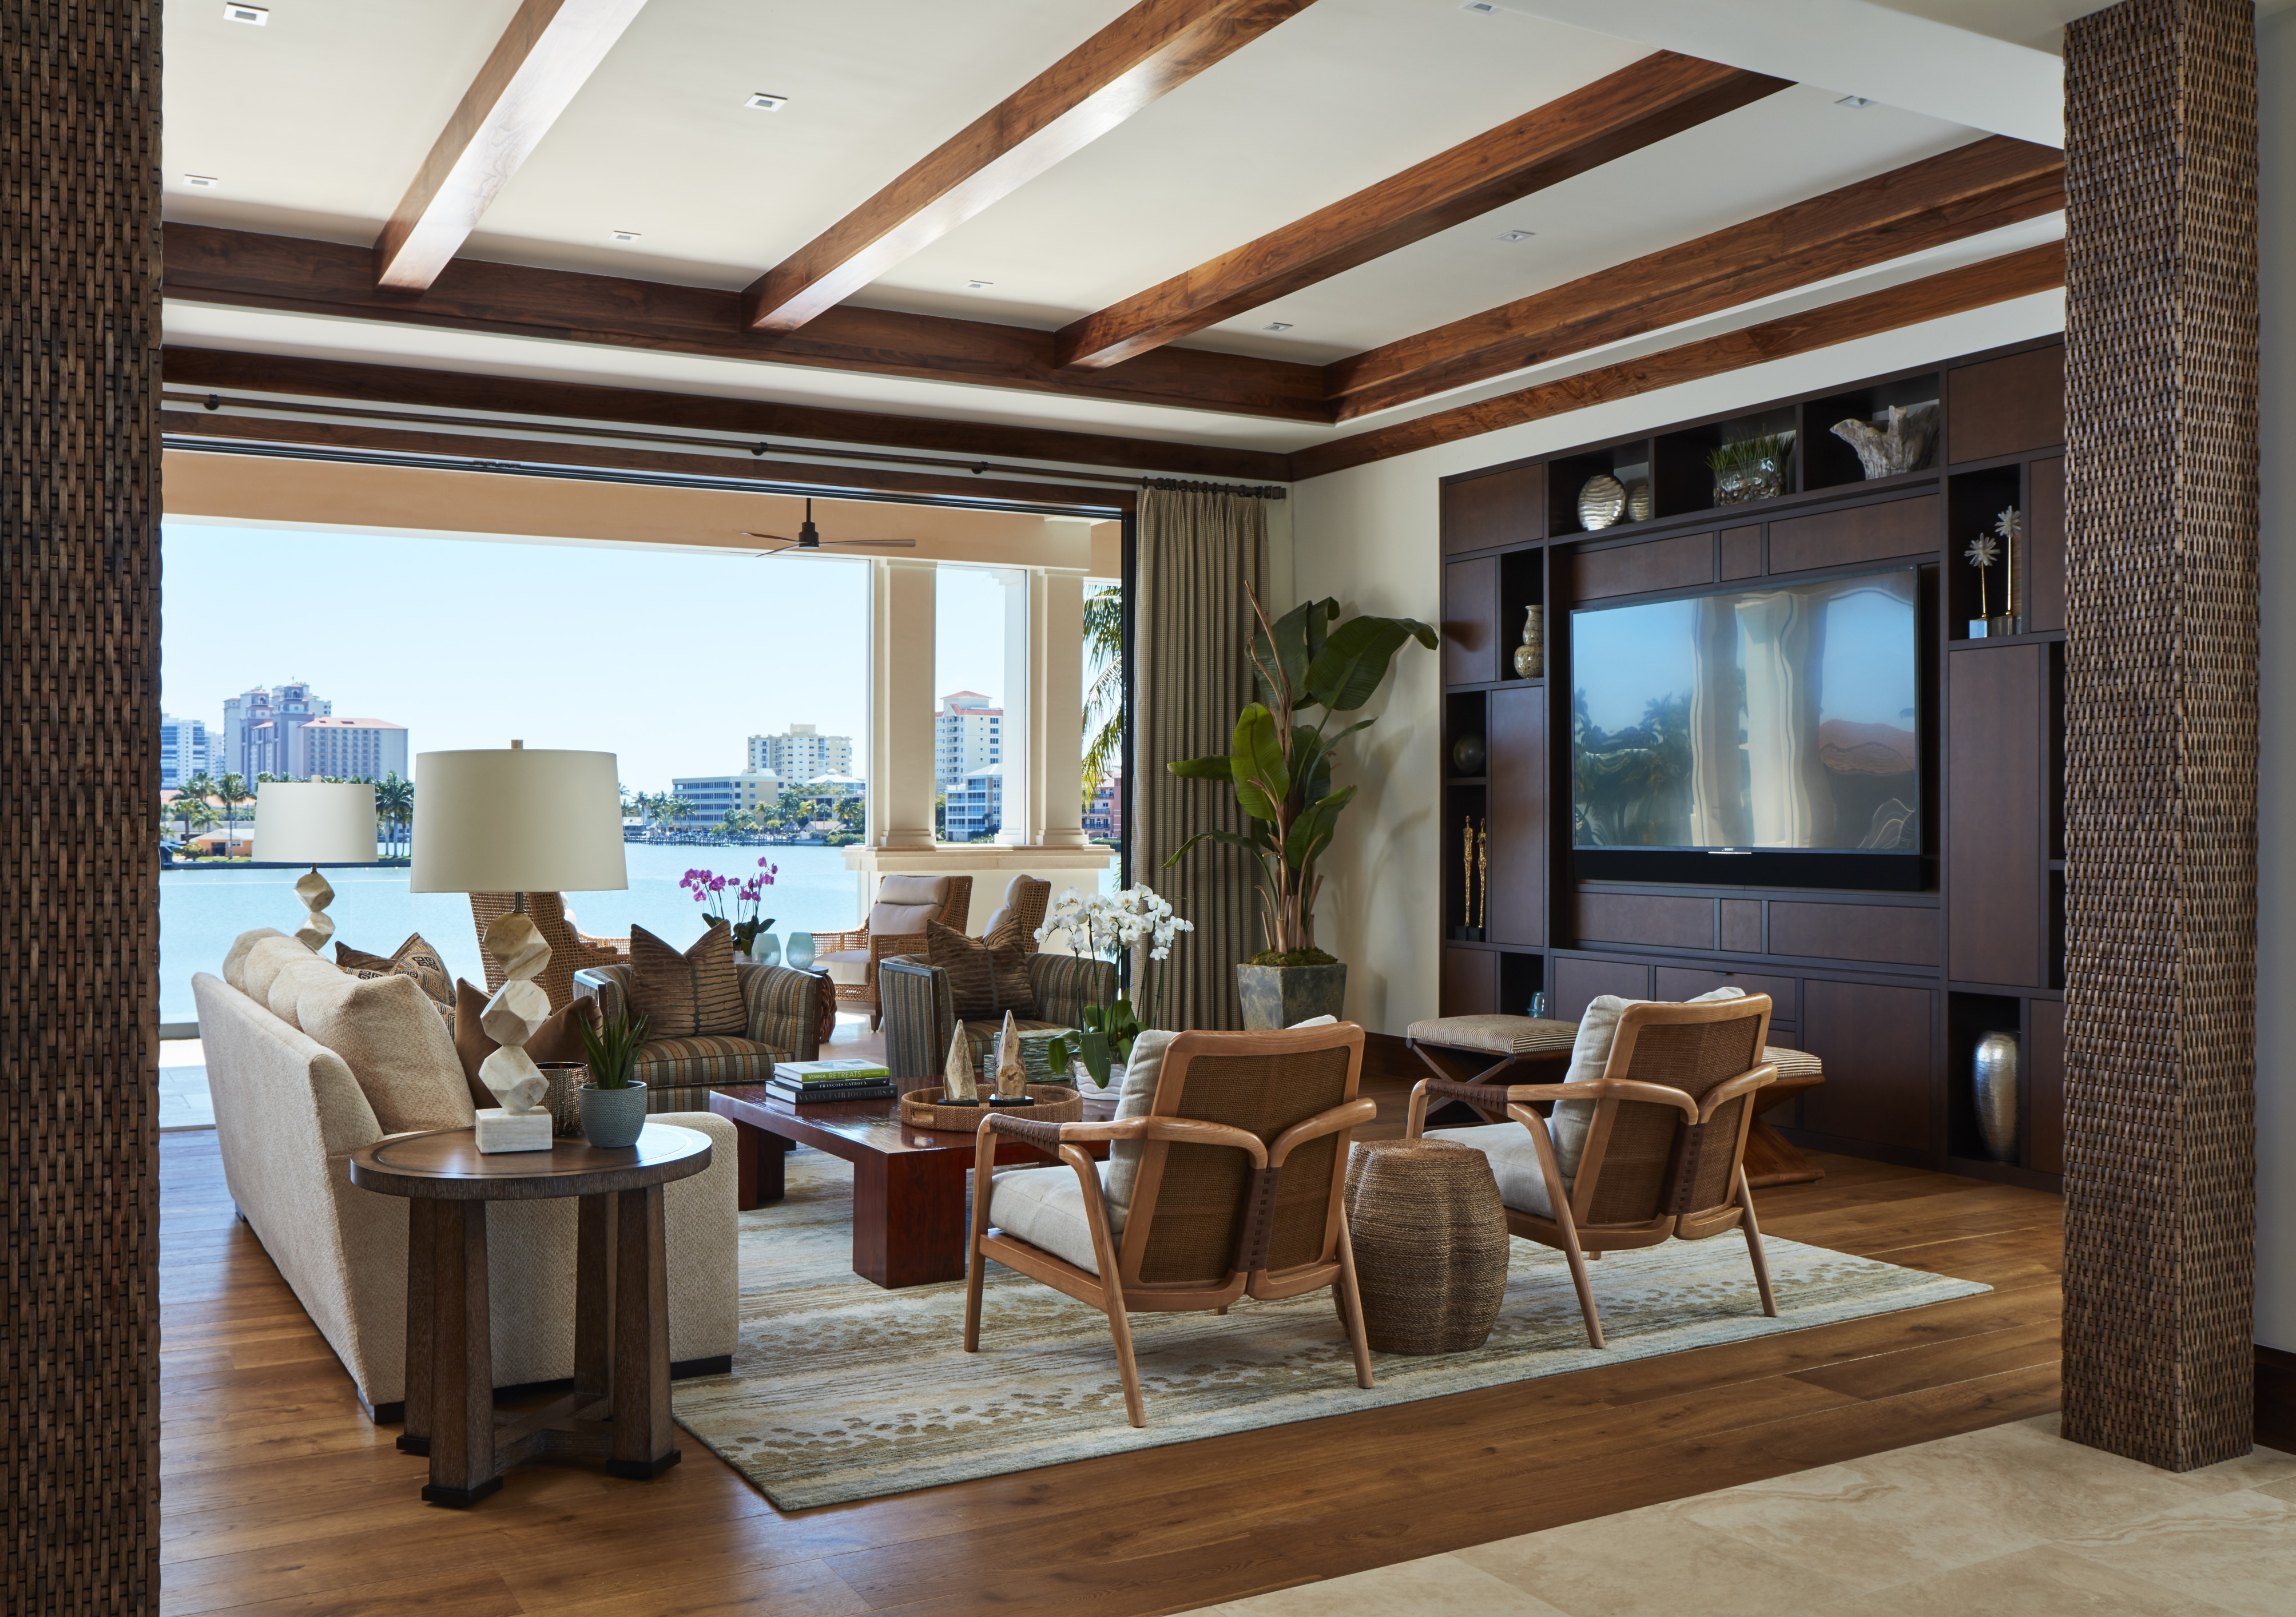 Dreaming Beyond the Limits | Naples Flooring Company